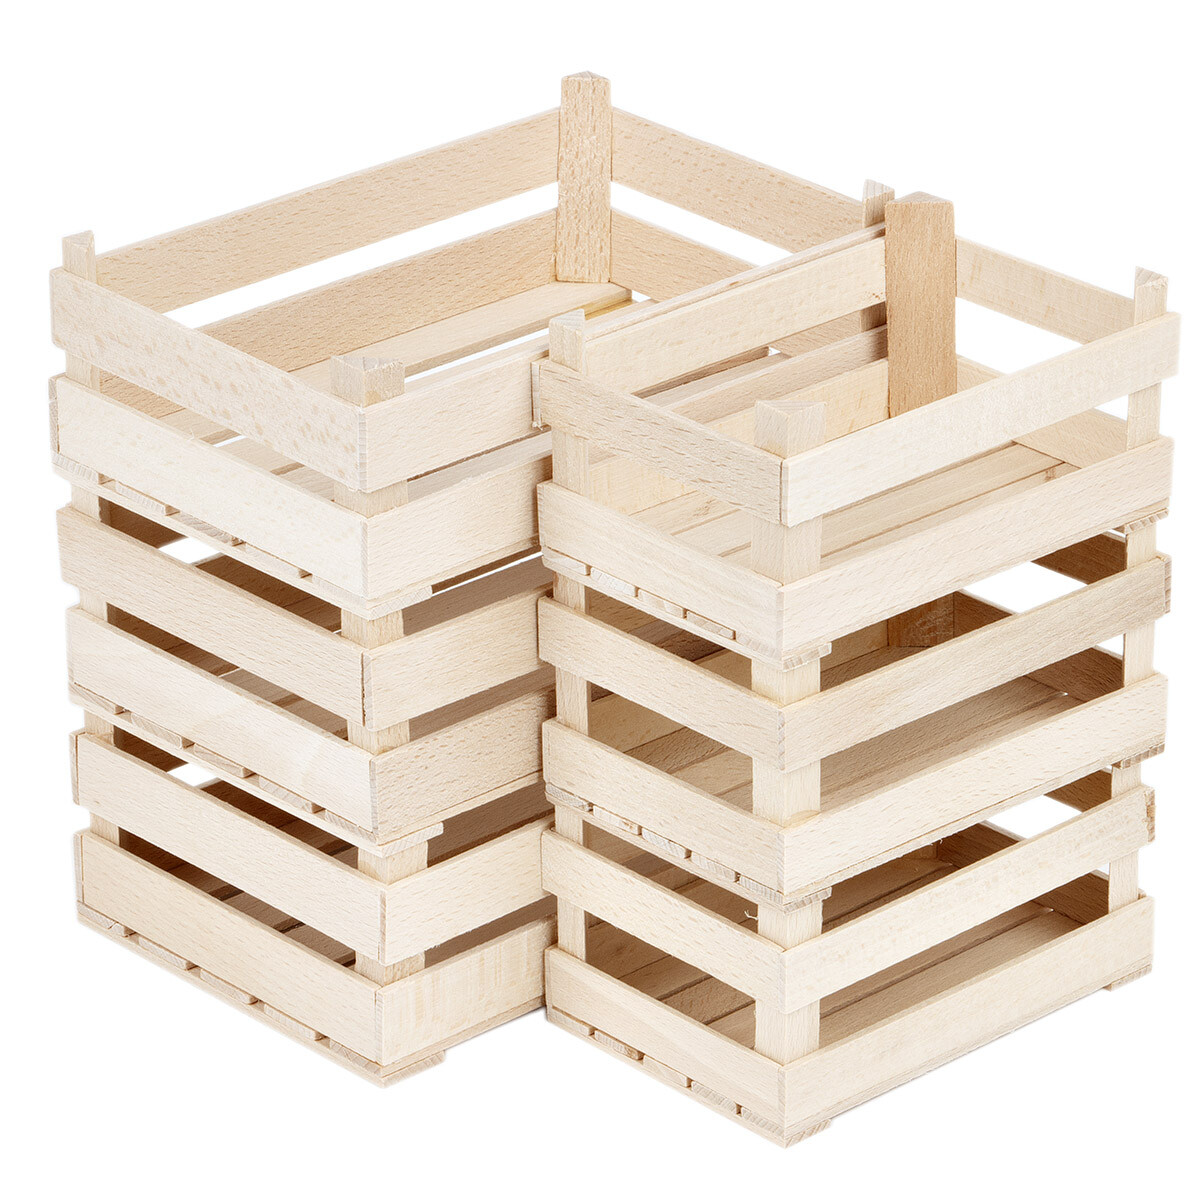 Caisse bo te en bois bo tes d coratives coffre en for Boites de rangement decoratives